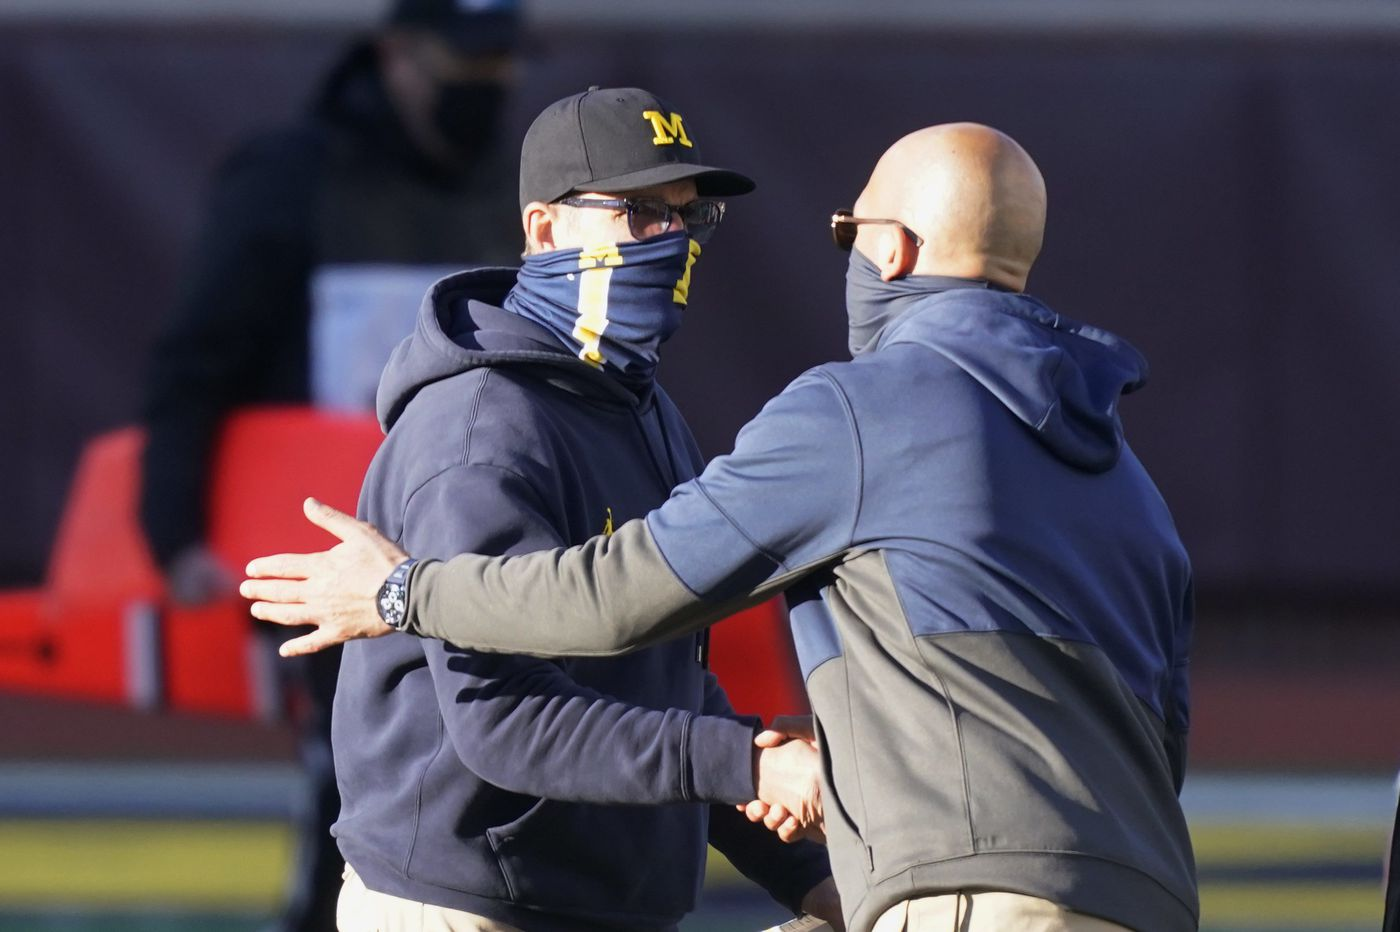 James Franklin hears Penn State fans' anger, tries to remain consistent in difficult season